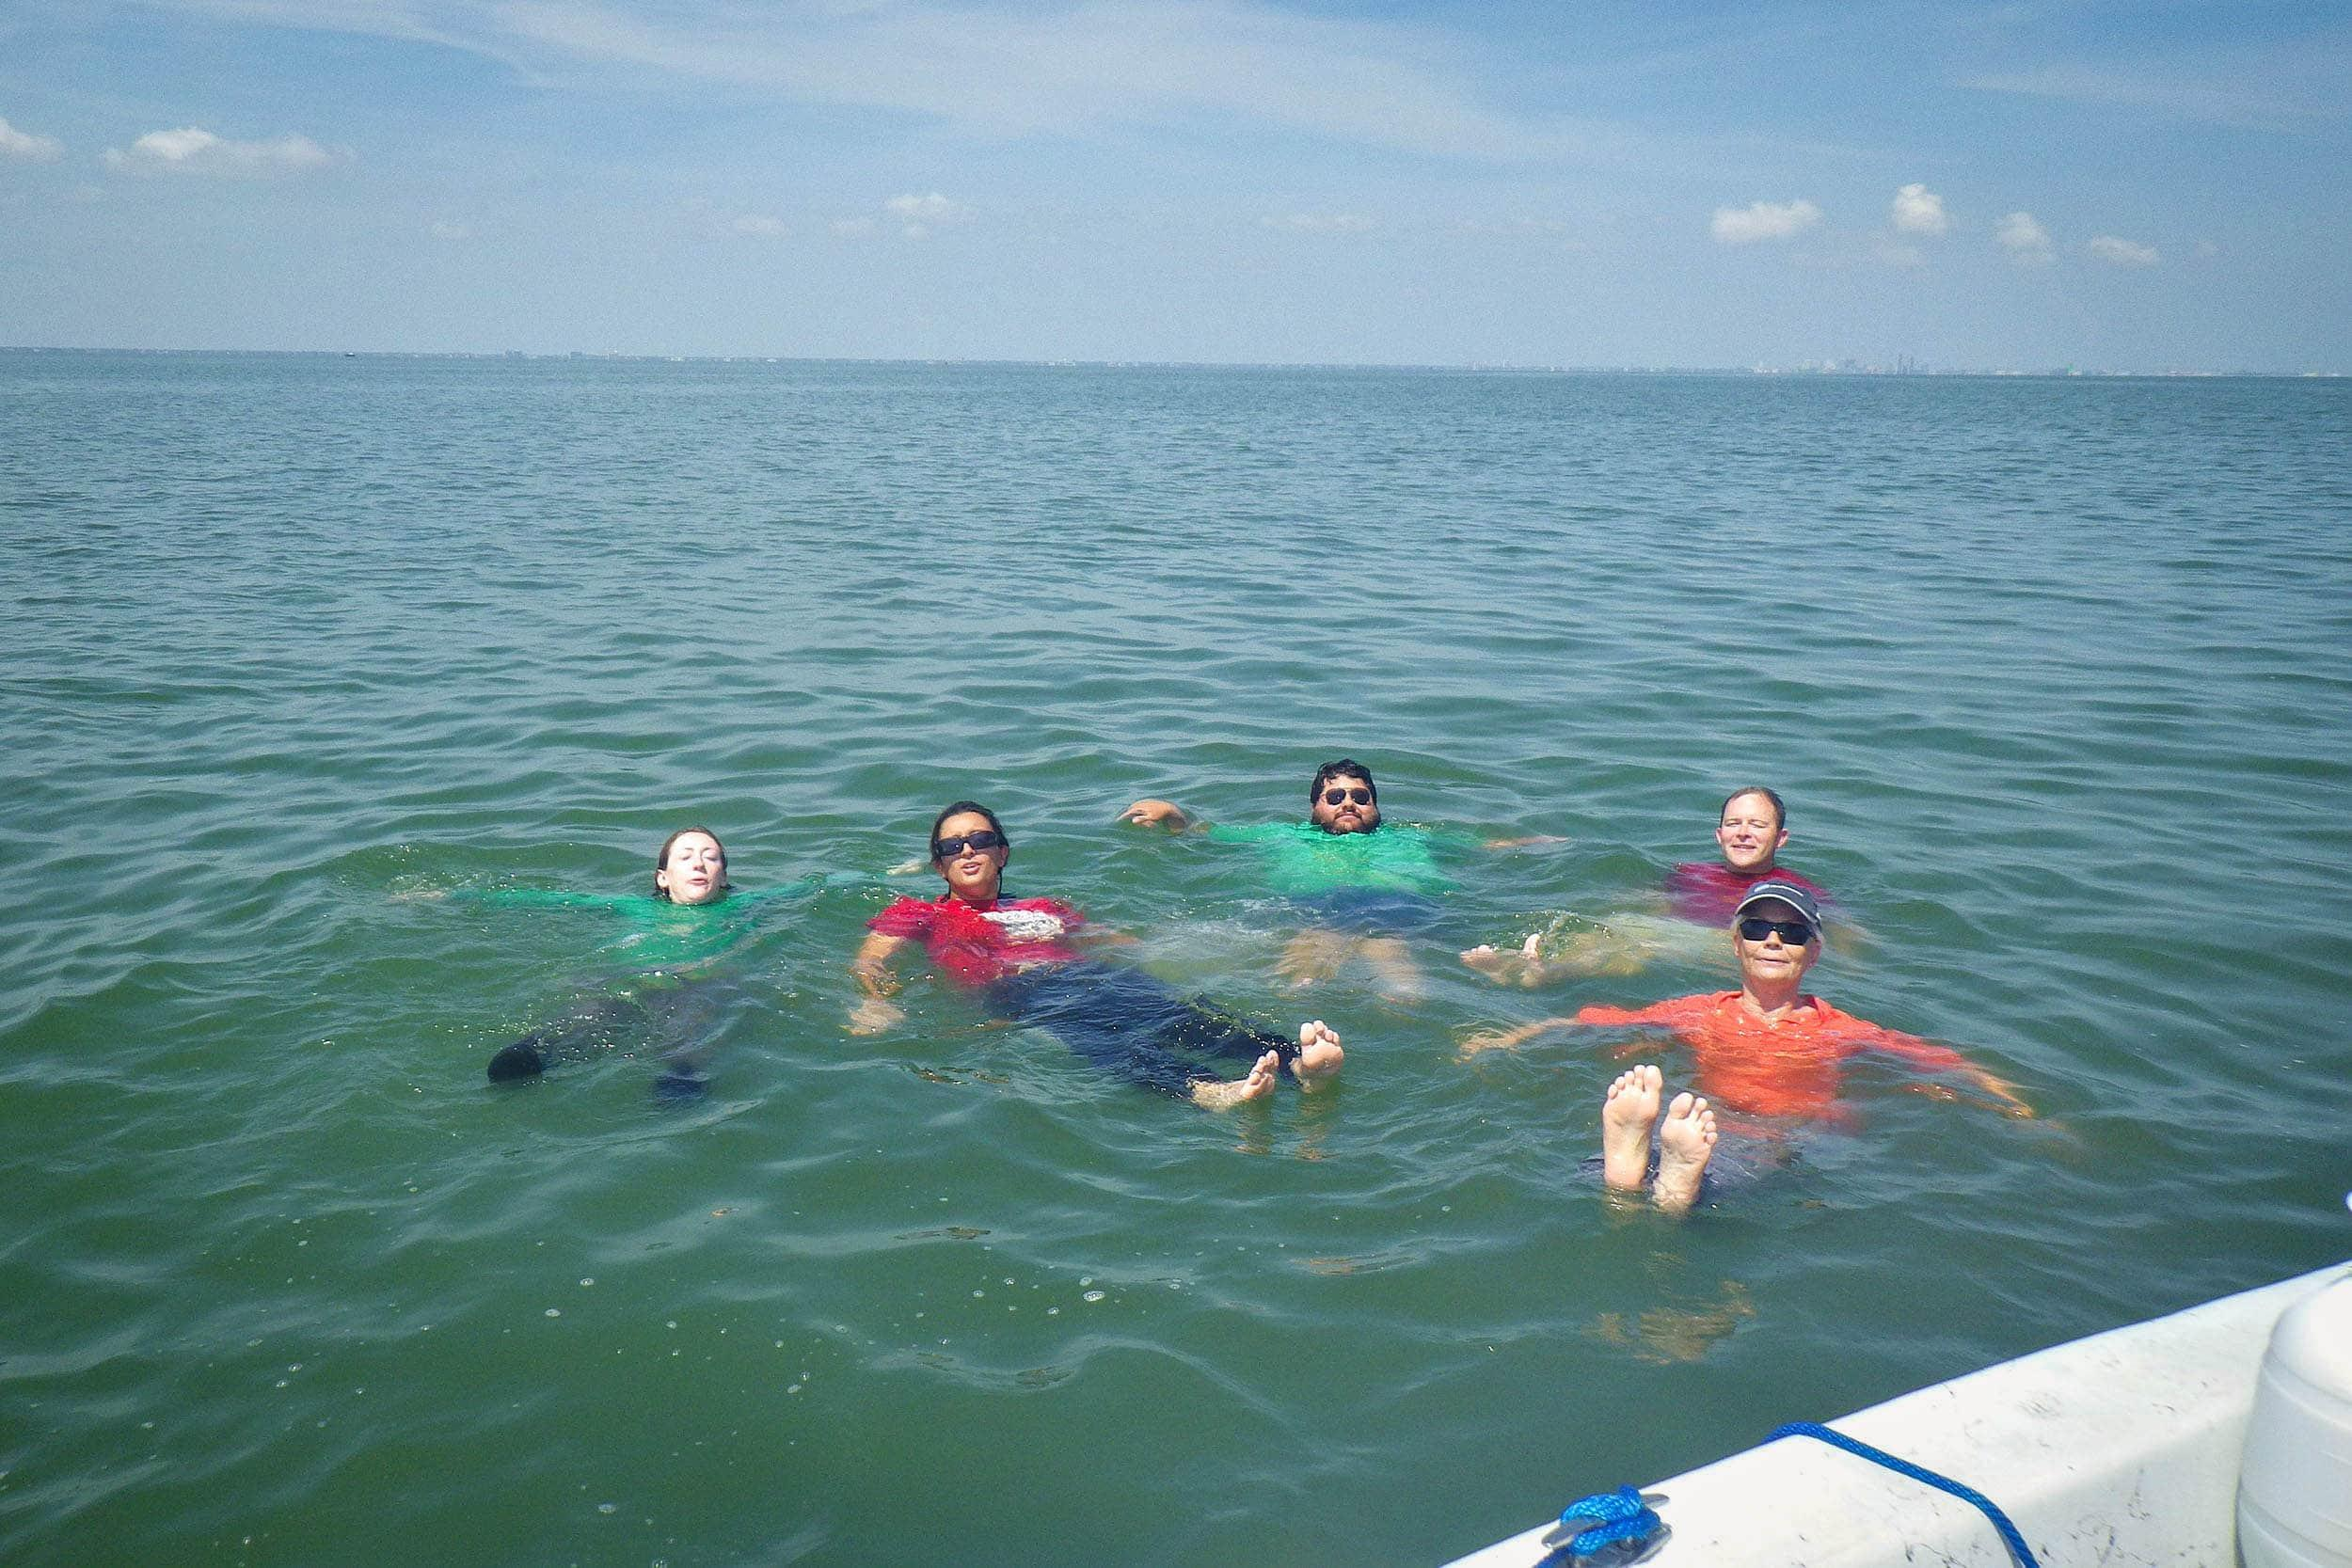 EIH NCCA crew enjoy a dip after completing their NCCA sampling in Corpus Christi Bay.